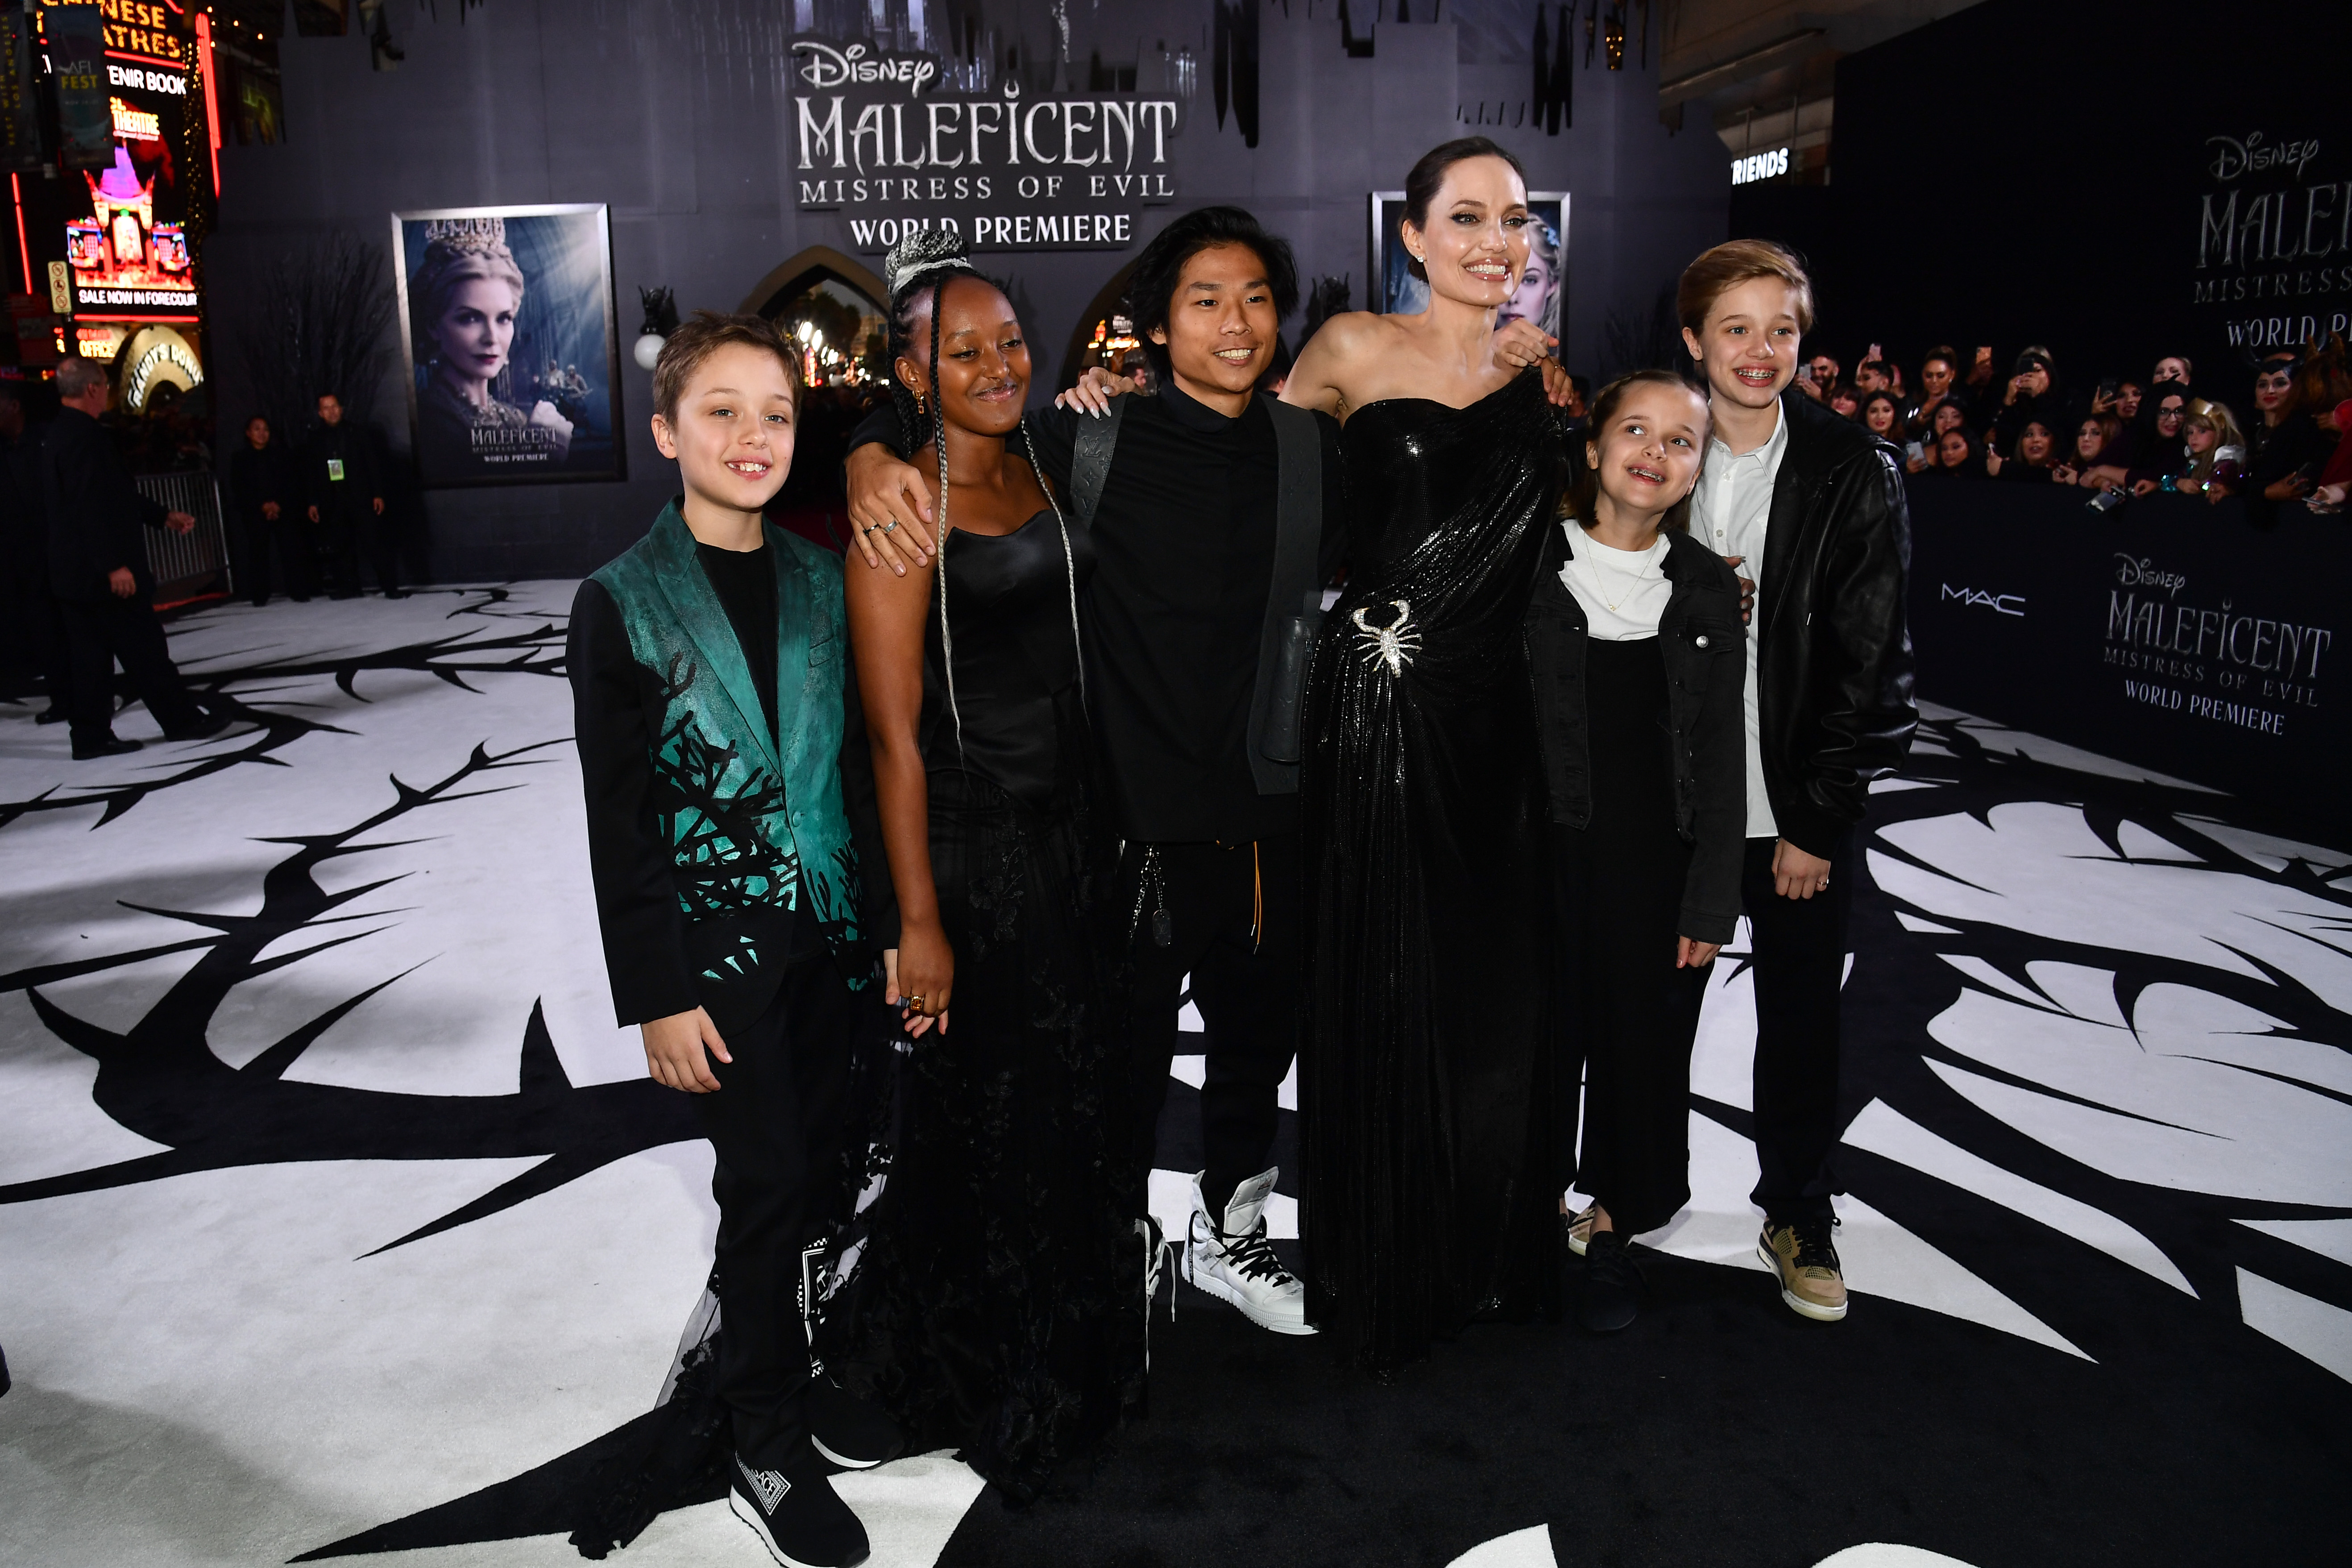 Angelina Jolie Reveals 'None' of Her 6 Kids Want to Follow in Her Footsteps to Become Actors